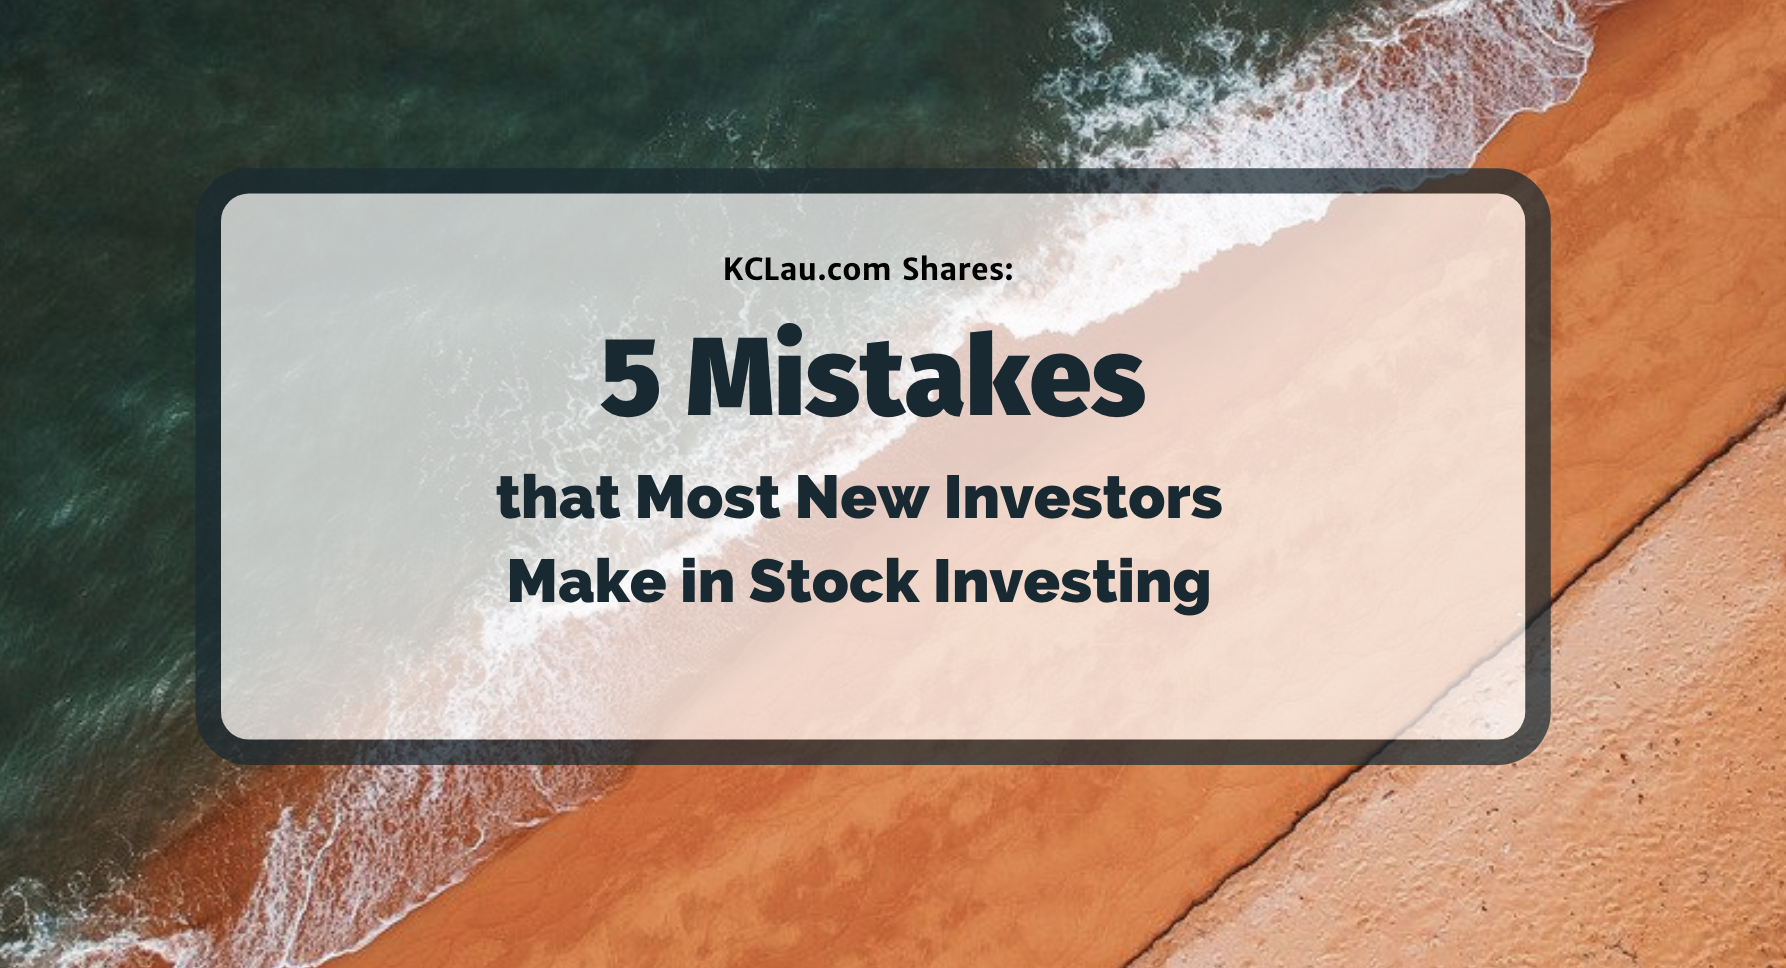 5 Mistakes that Most New Investors Make in Stock Investing